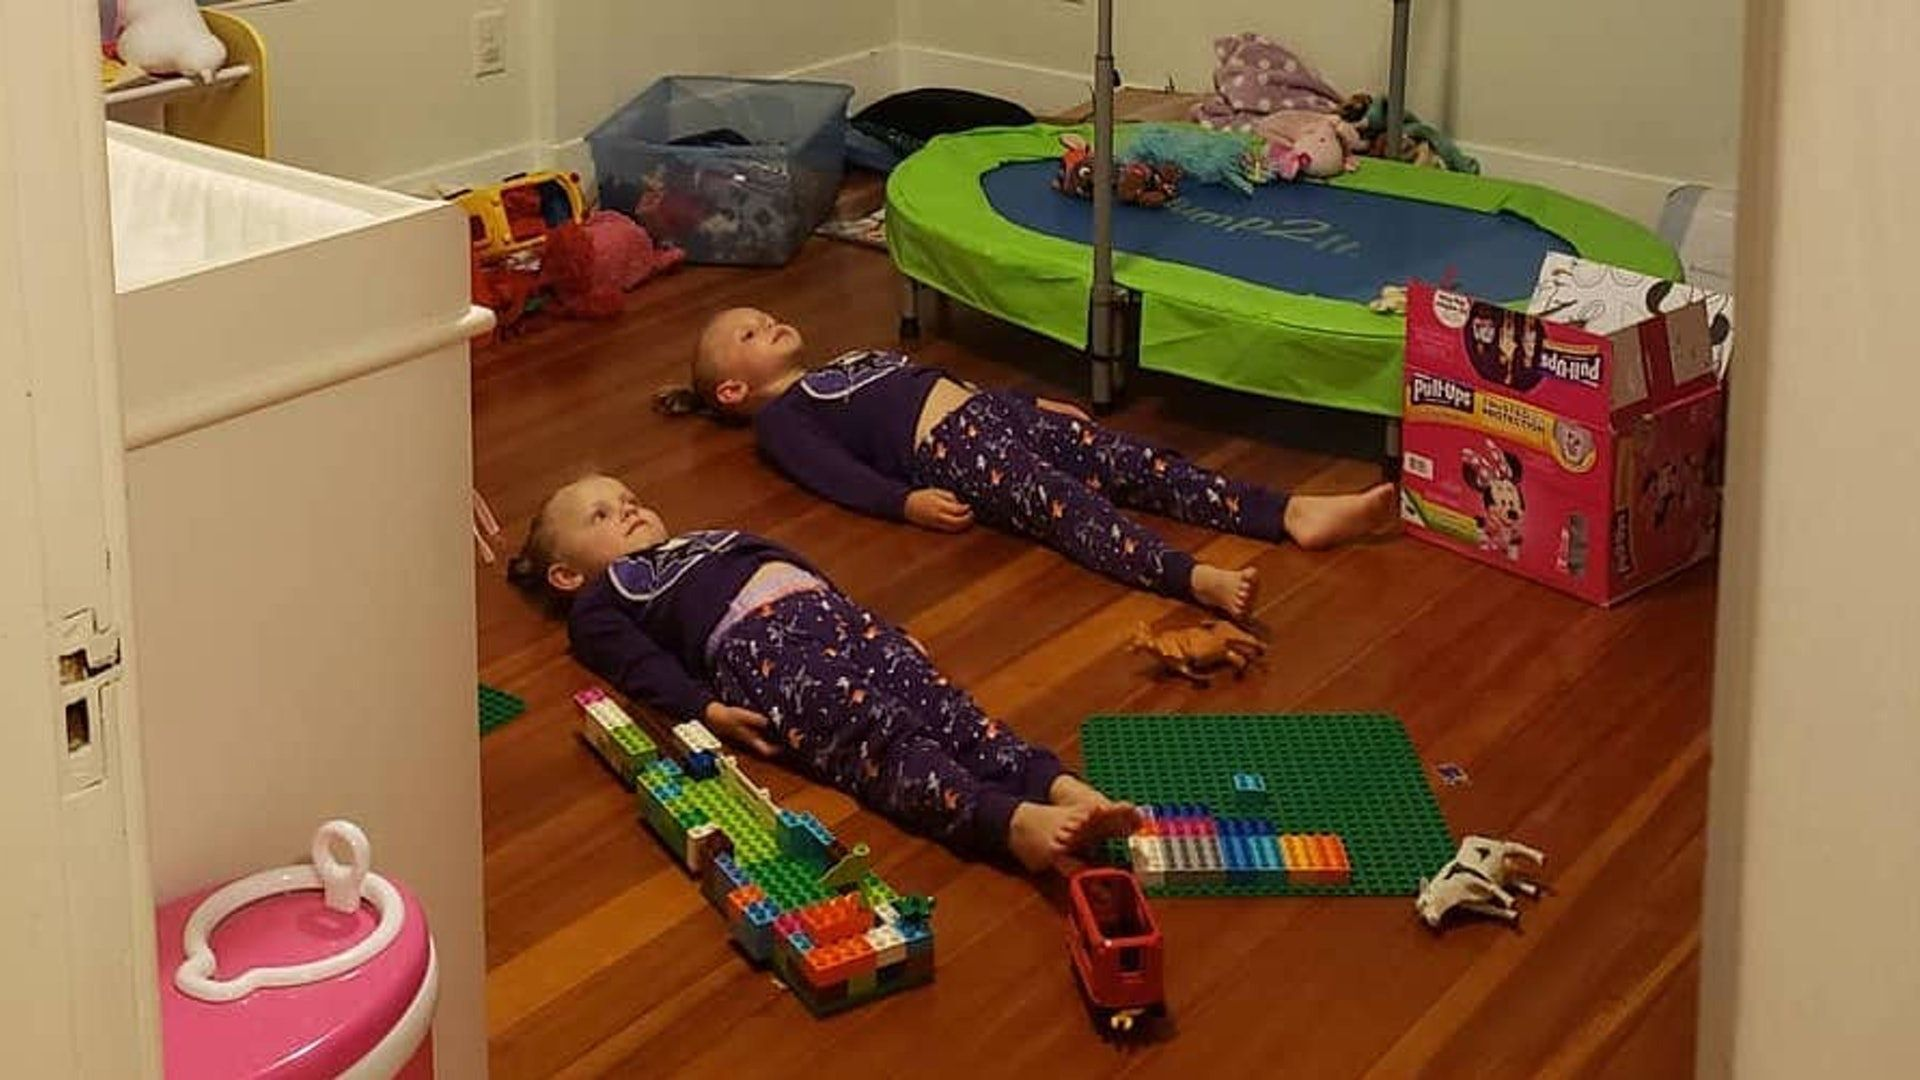 This Mom's Trick For Getting Her Kids To Calm Down Before Bedtime Is Genius #geniusmomtricks This Mom's Trick For Getting Her Kids To Calm Down Before Bedtime Is Genius #geniusmomtricks